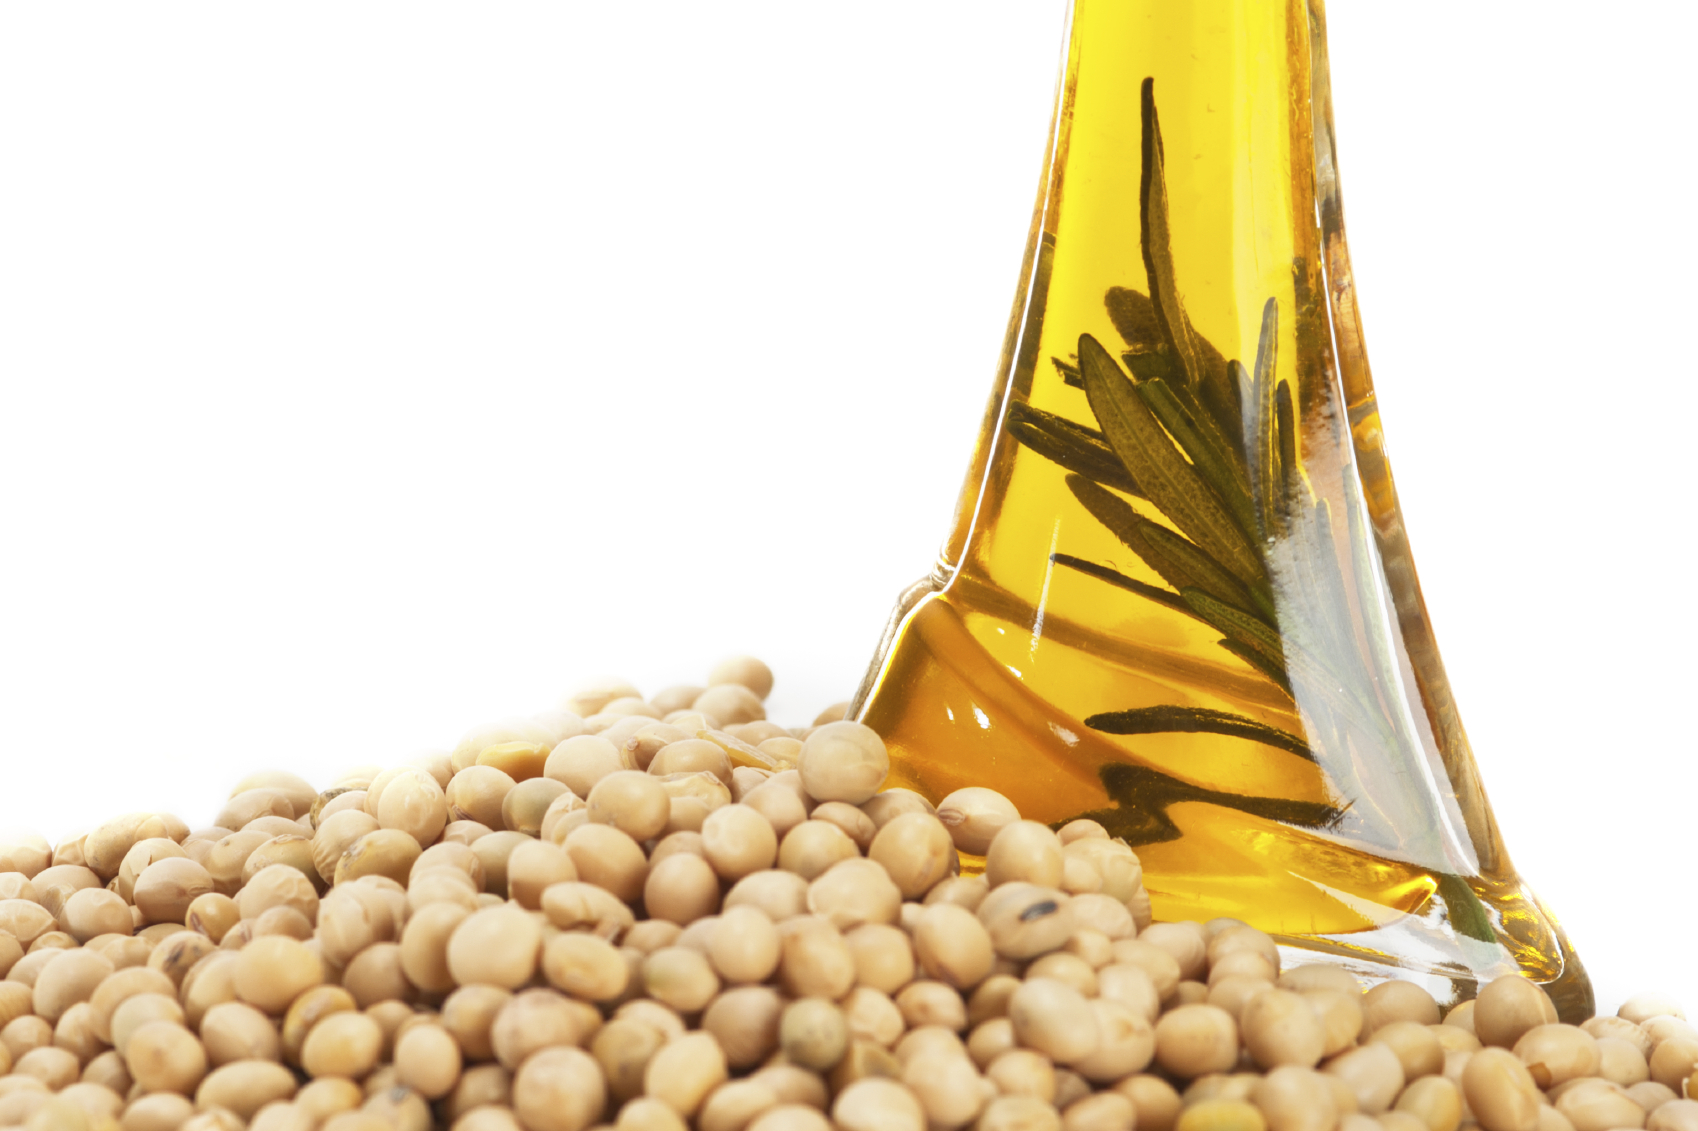 """This """"healthy"""" oil is in everything from frozen meals to salad dressings. But research shows it may be putting you at risk for diabetes, weight gain, and worse."""